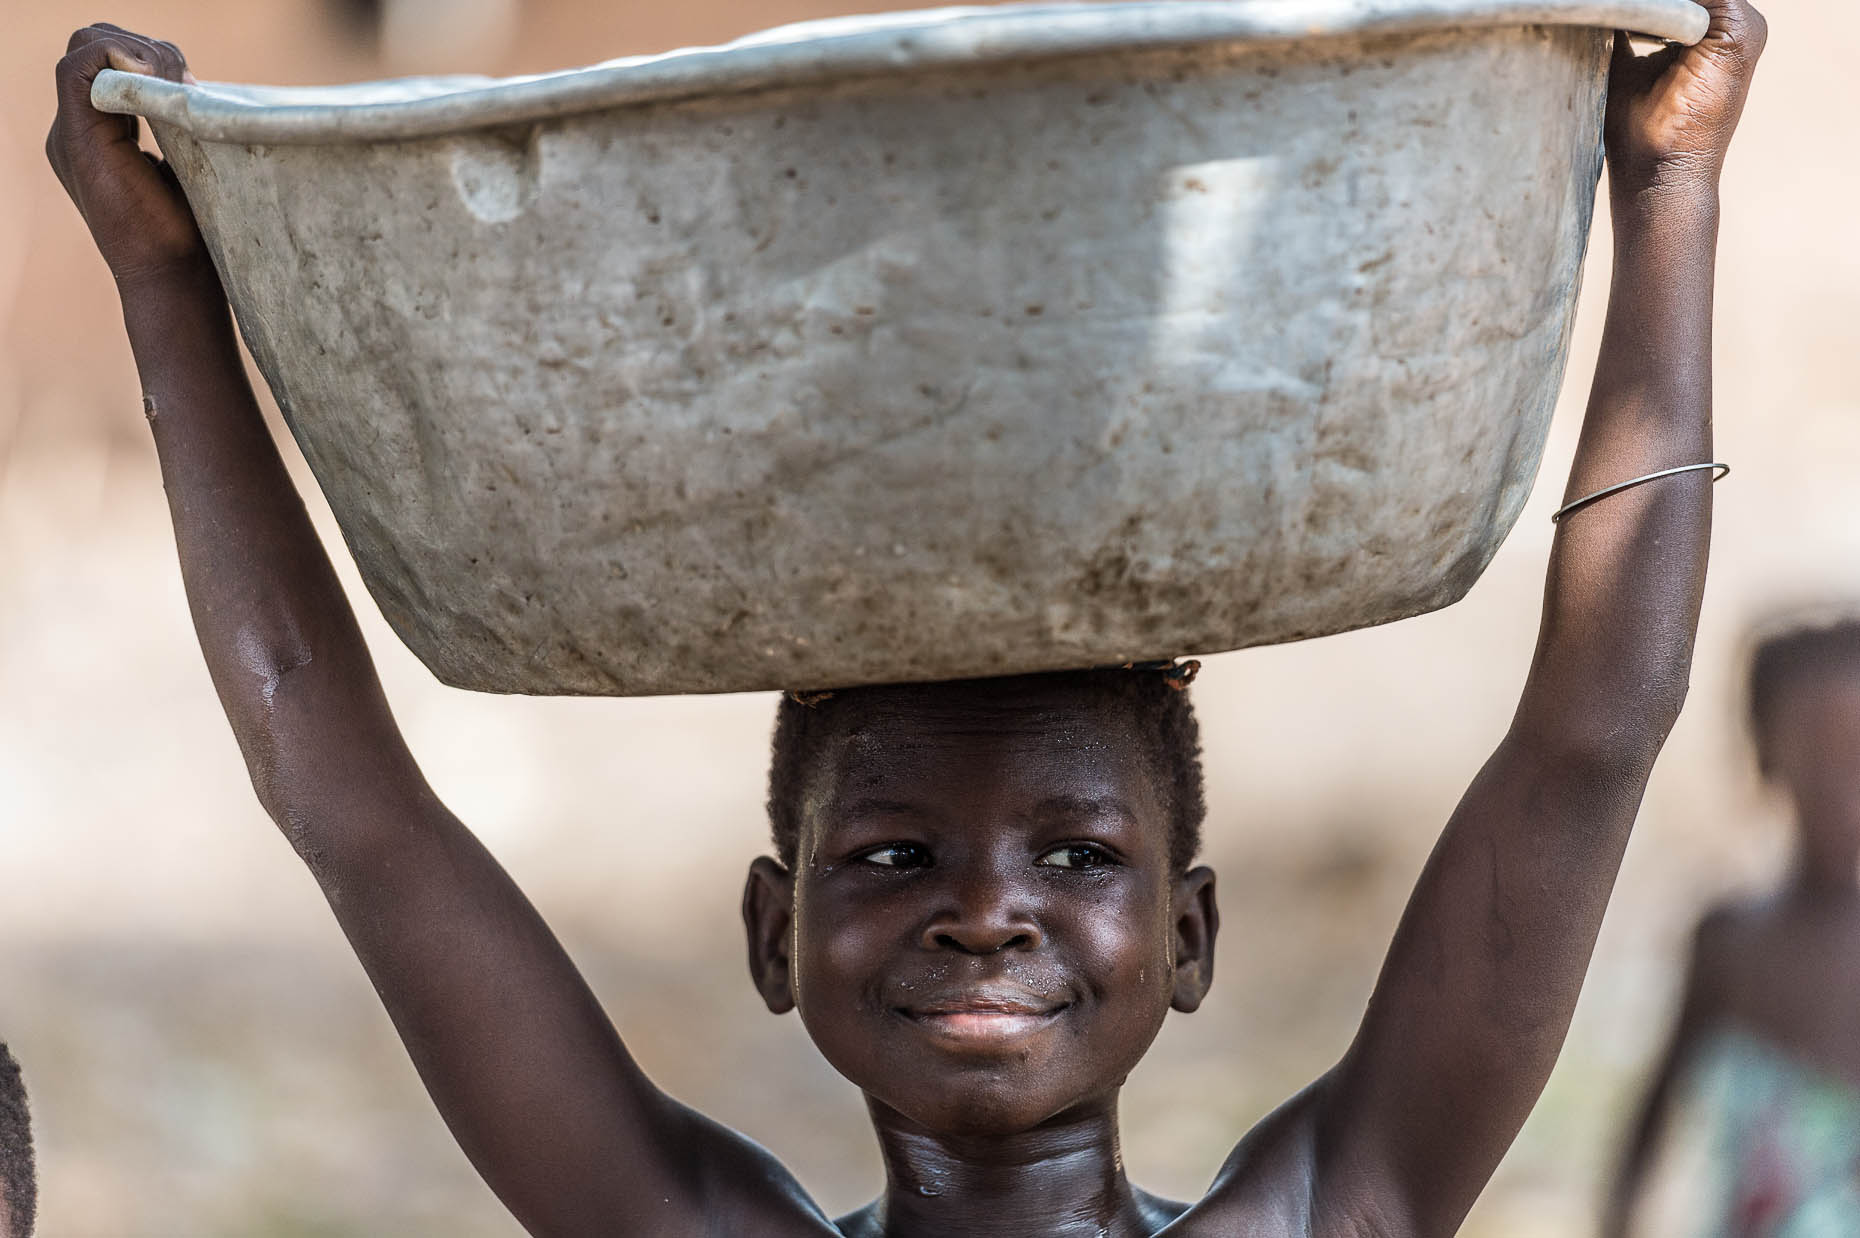 Girl-with-water-container-on-head-Ghana